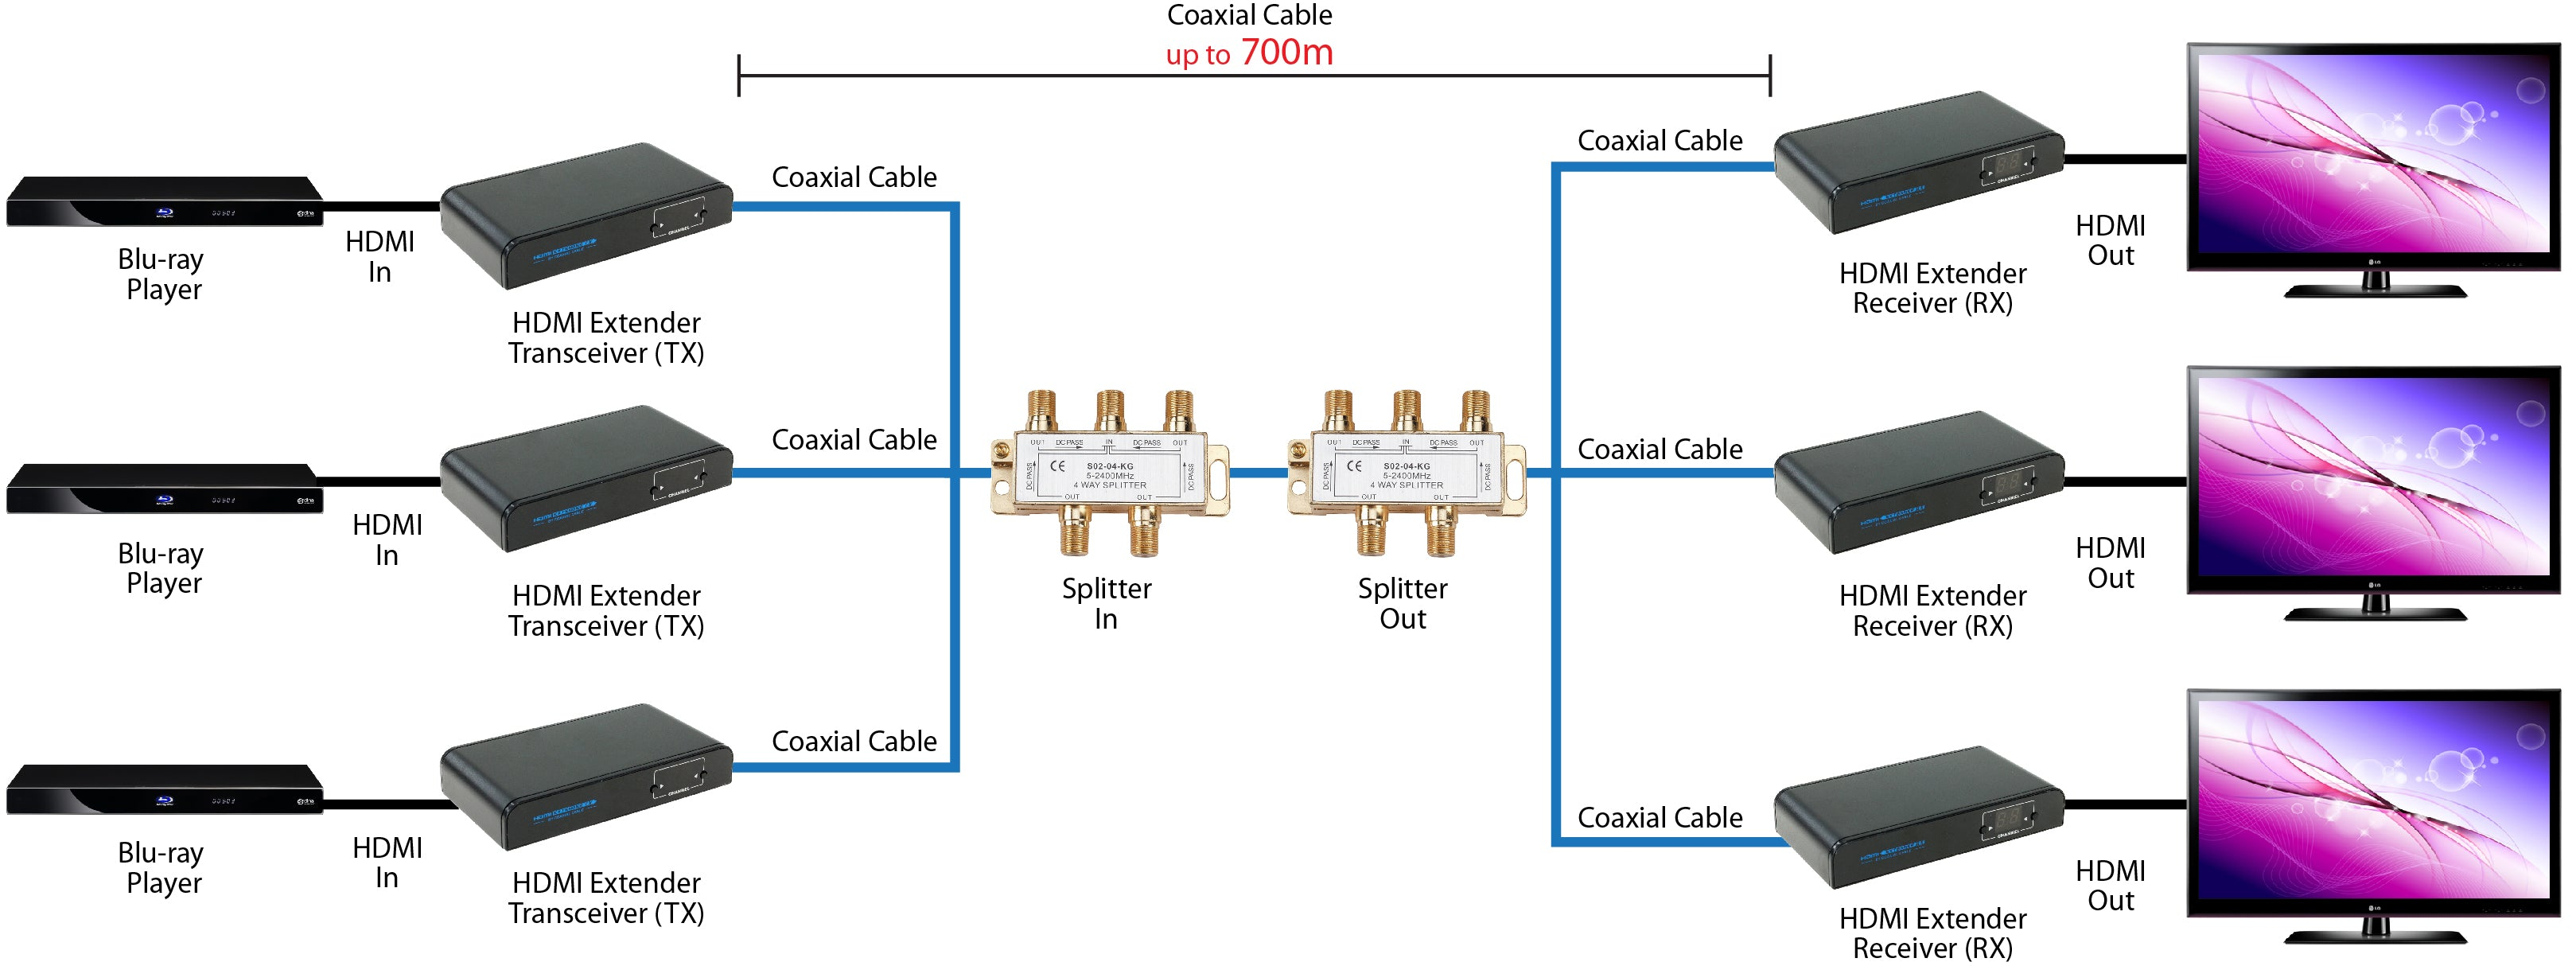 HDMI Extender Over Coaxial Cable Multiple Connection